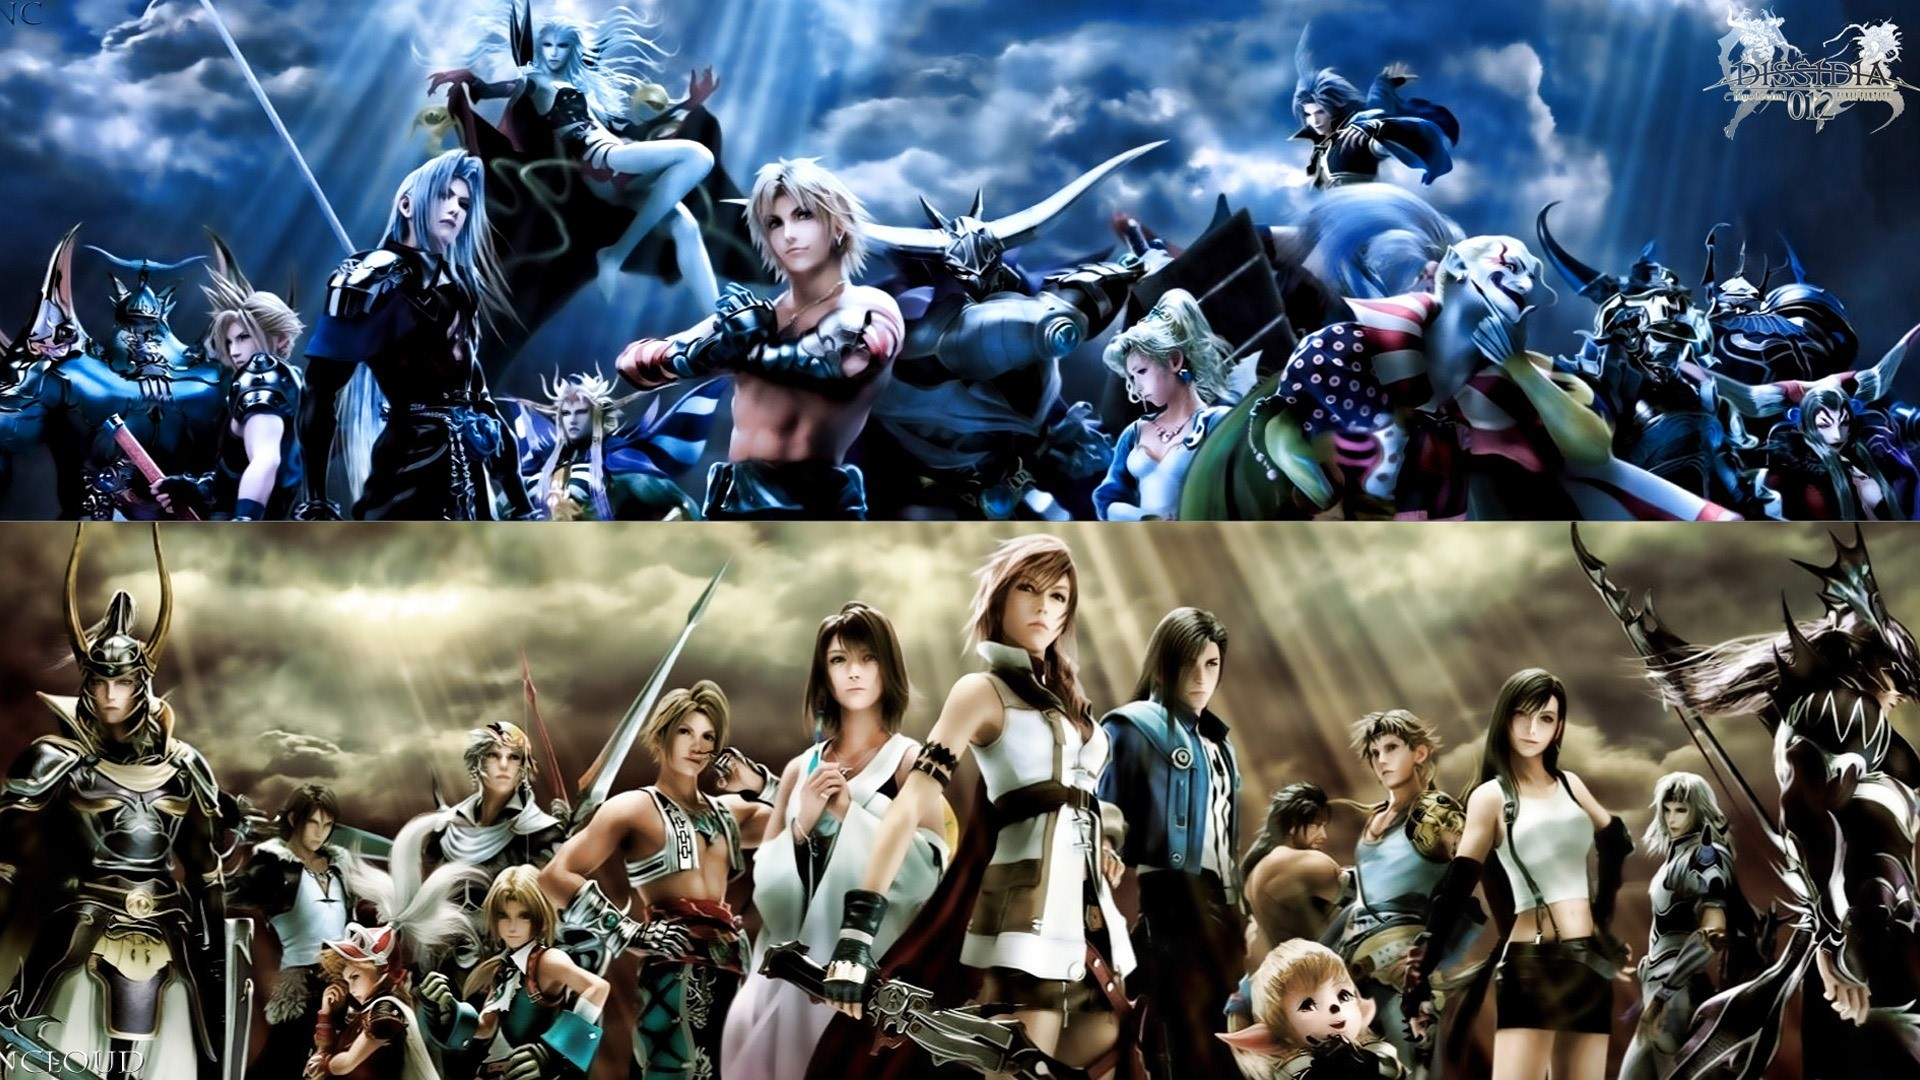 Top Hottest Final Fantasy Girls Can You Guess Whos Number | Wallpapers 4k |  Pinterest | Final fantasy, Final fantasy girls and Wallpaper